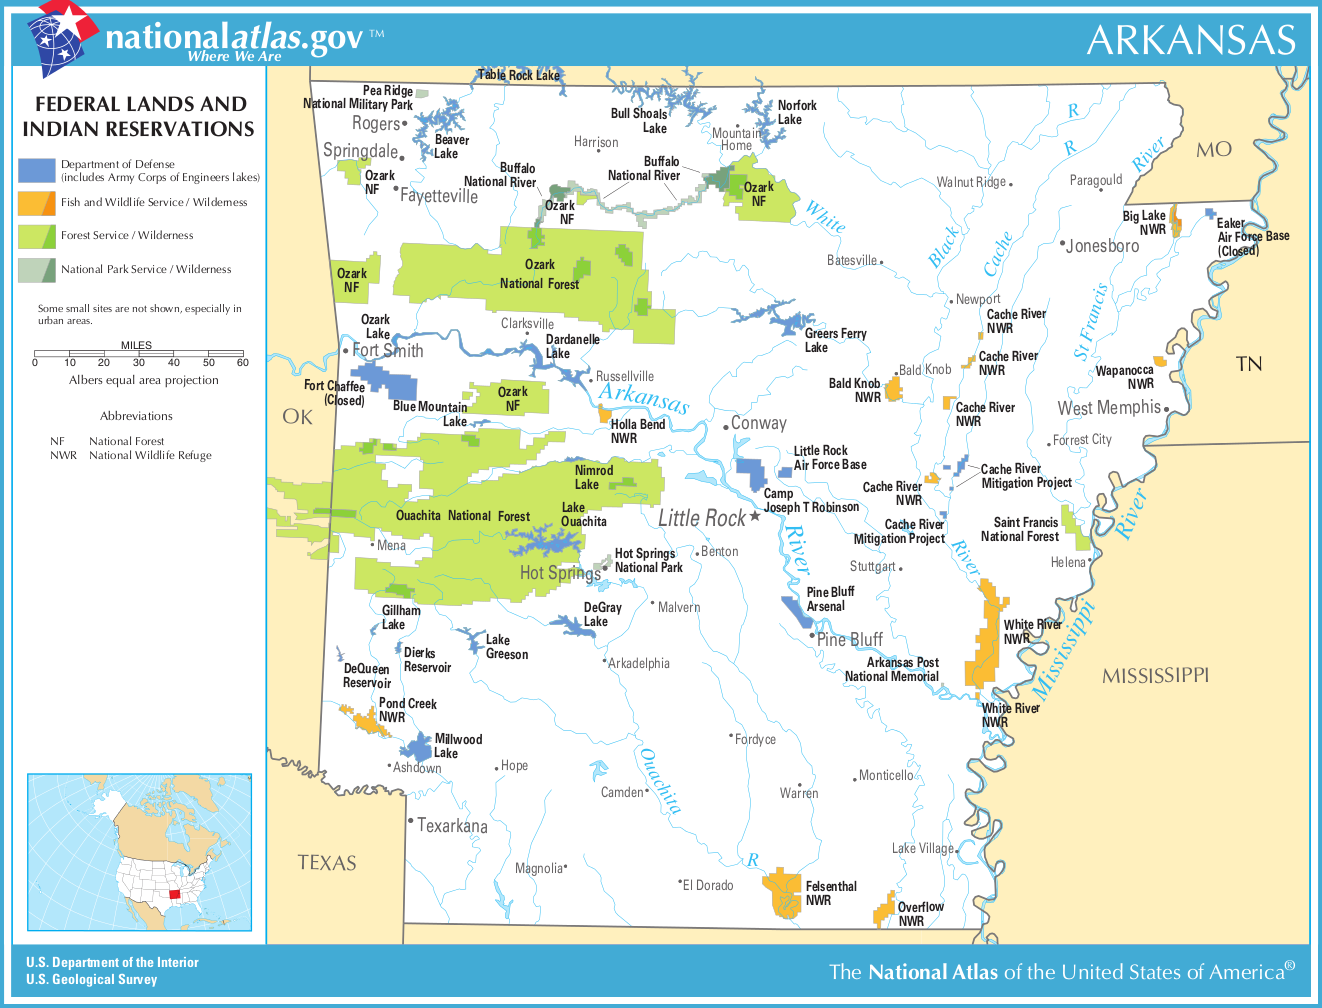 Map Of Arkansas Map Federal Lands And Indian Reservations - Arkansas map usa